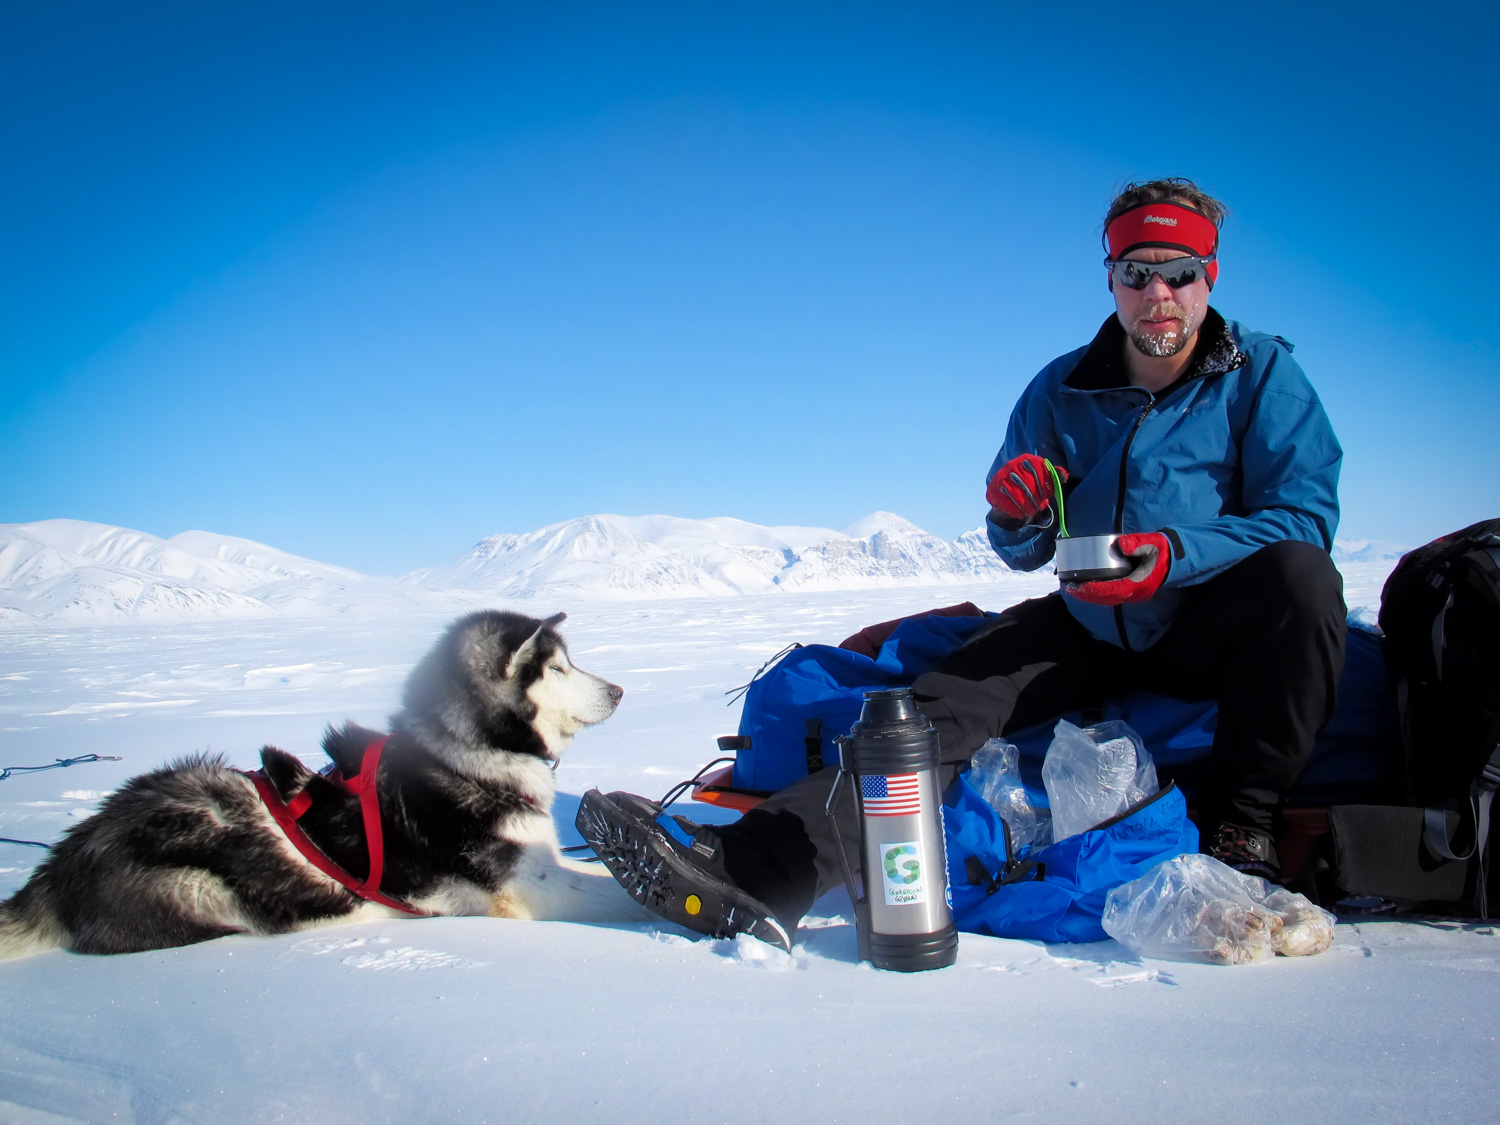 John Huston taking a sustenance break on Canada's Ellesmere Island with his skijor companion Elle. © Tobias Thorleifsson